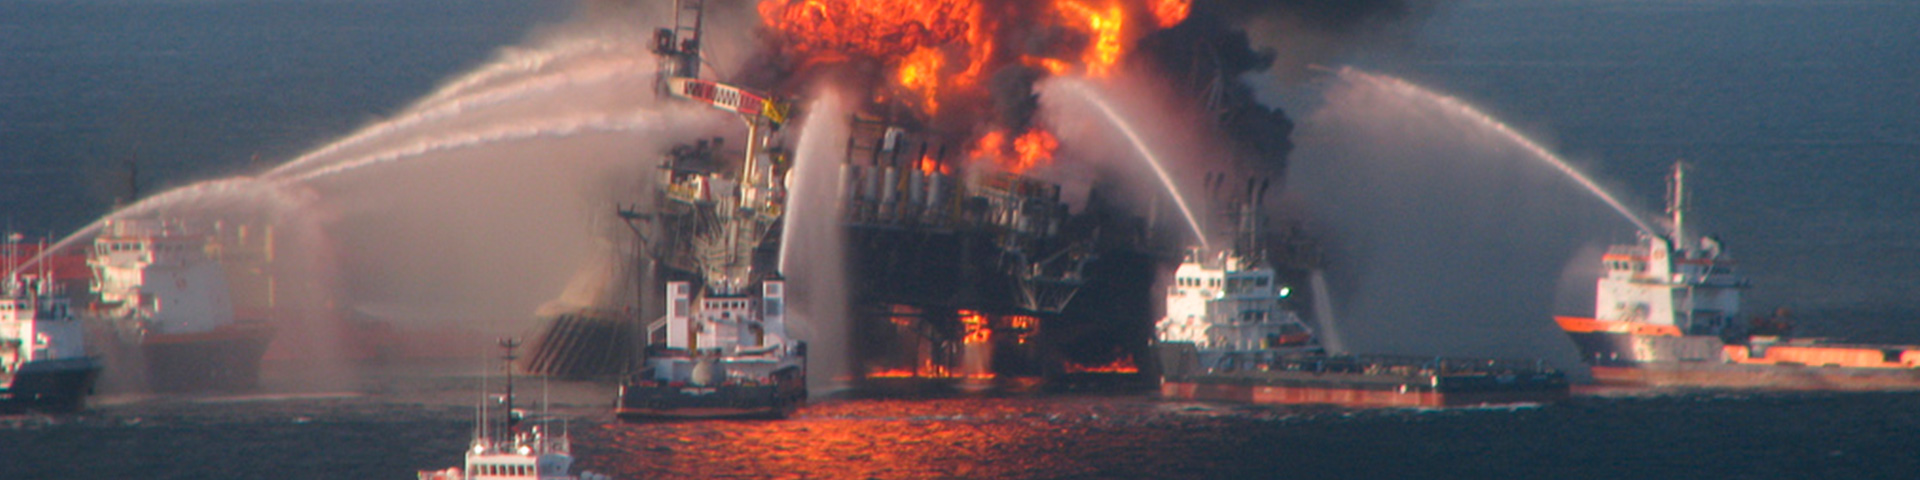 An ablaze oil rig being put out